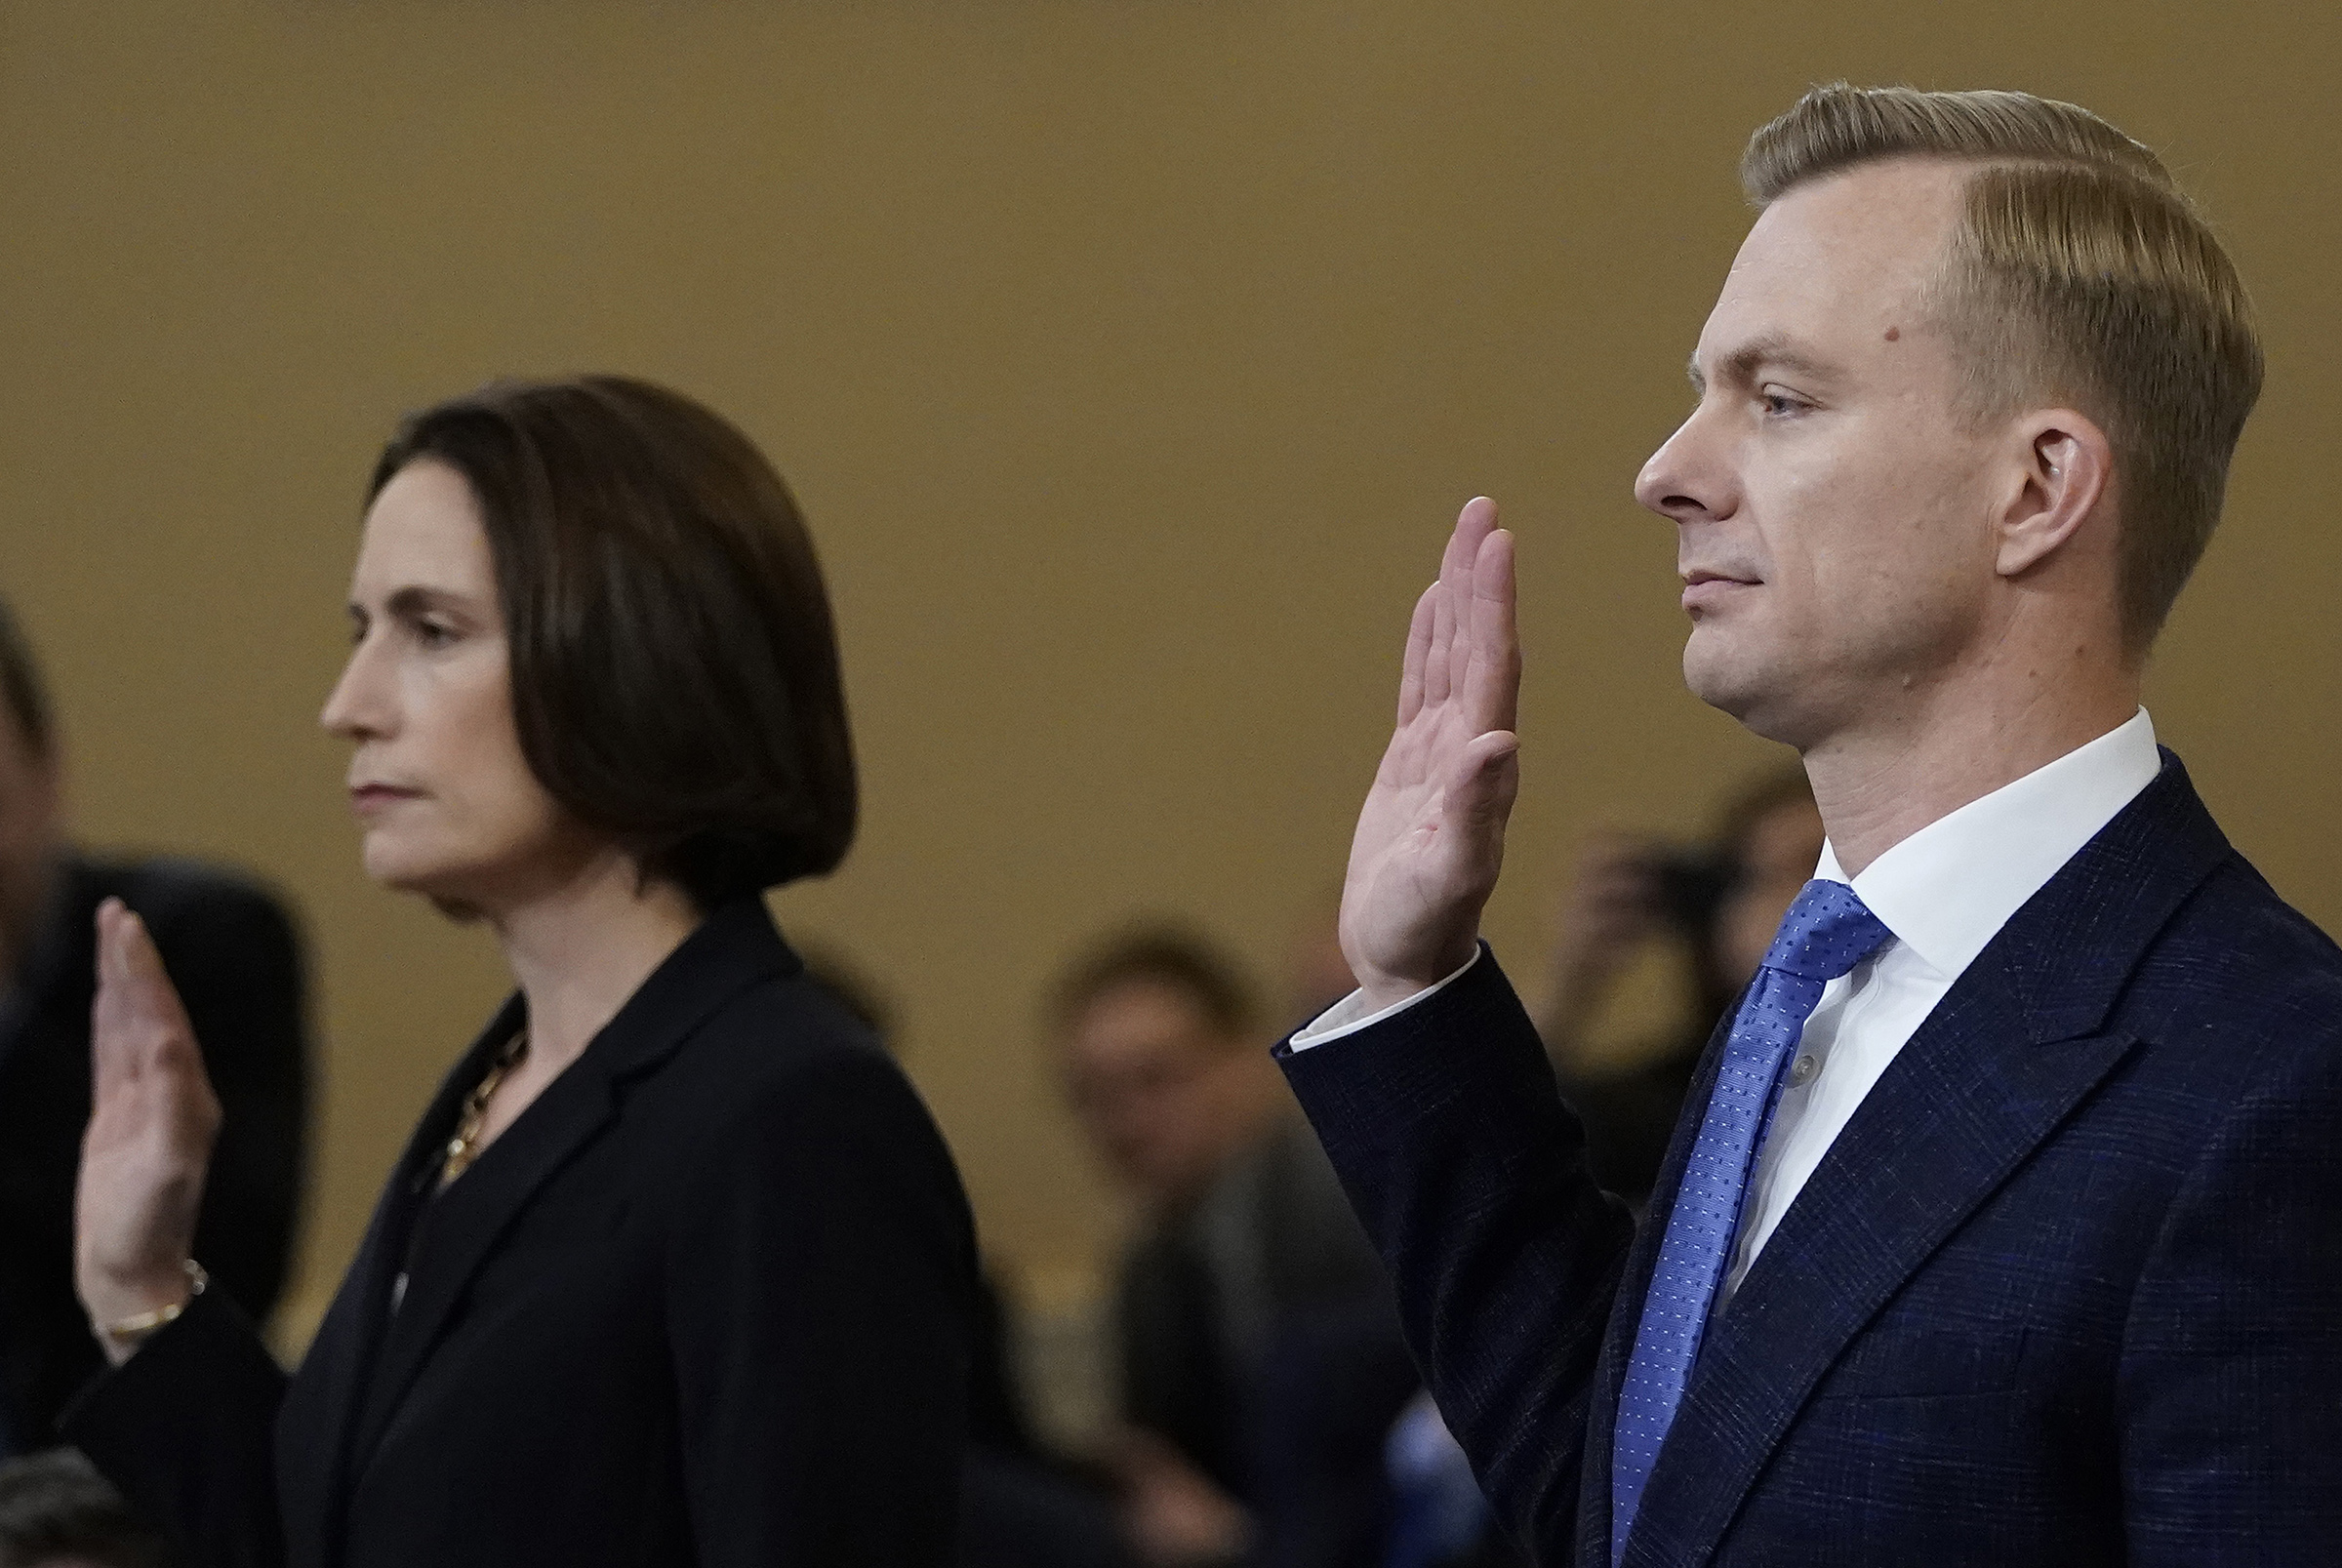 Fiona Hill, the National Security Council's former senior director for Europe and Russia, and David Holmes, an official from the American embassy in Ukraine, are sworn in prior to testifying before the House Intelligence Committee on Capitol Hill on Nov. 21, 2019.